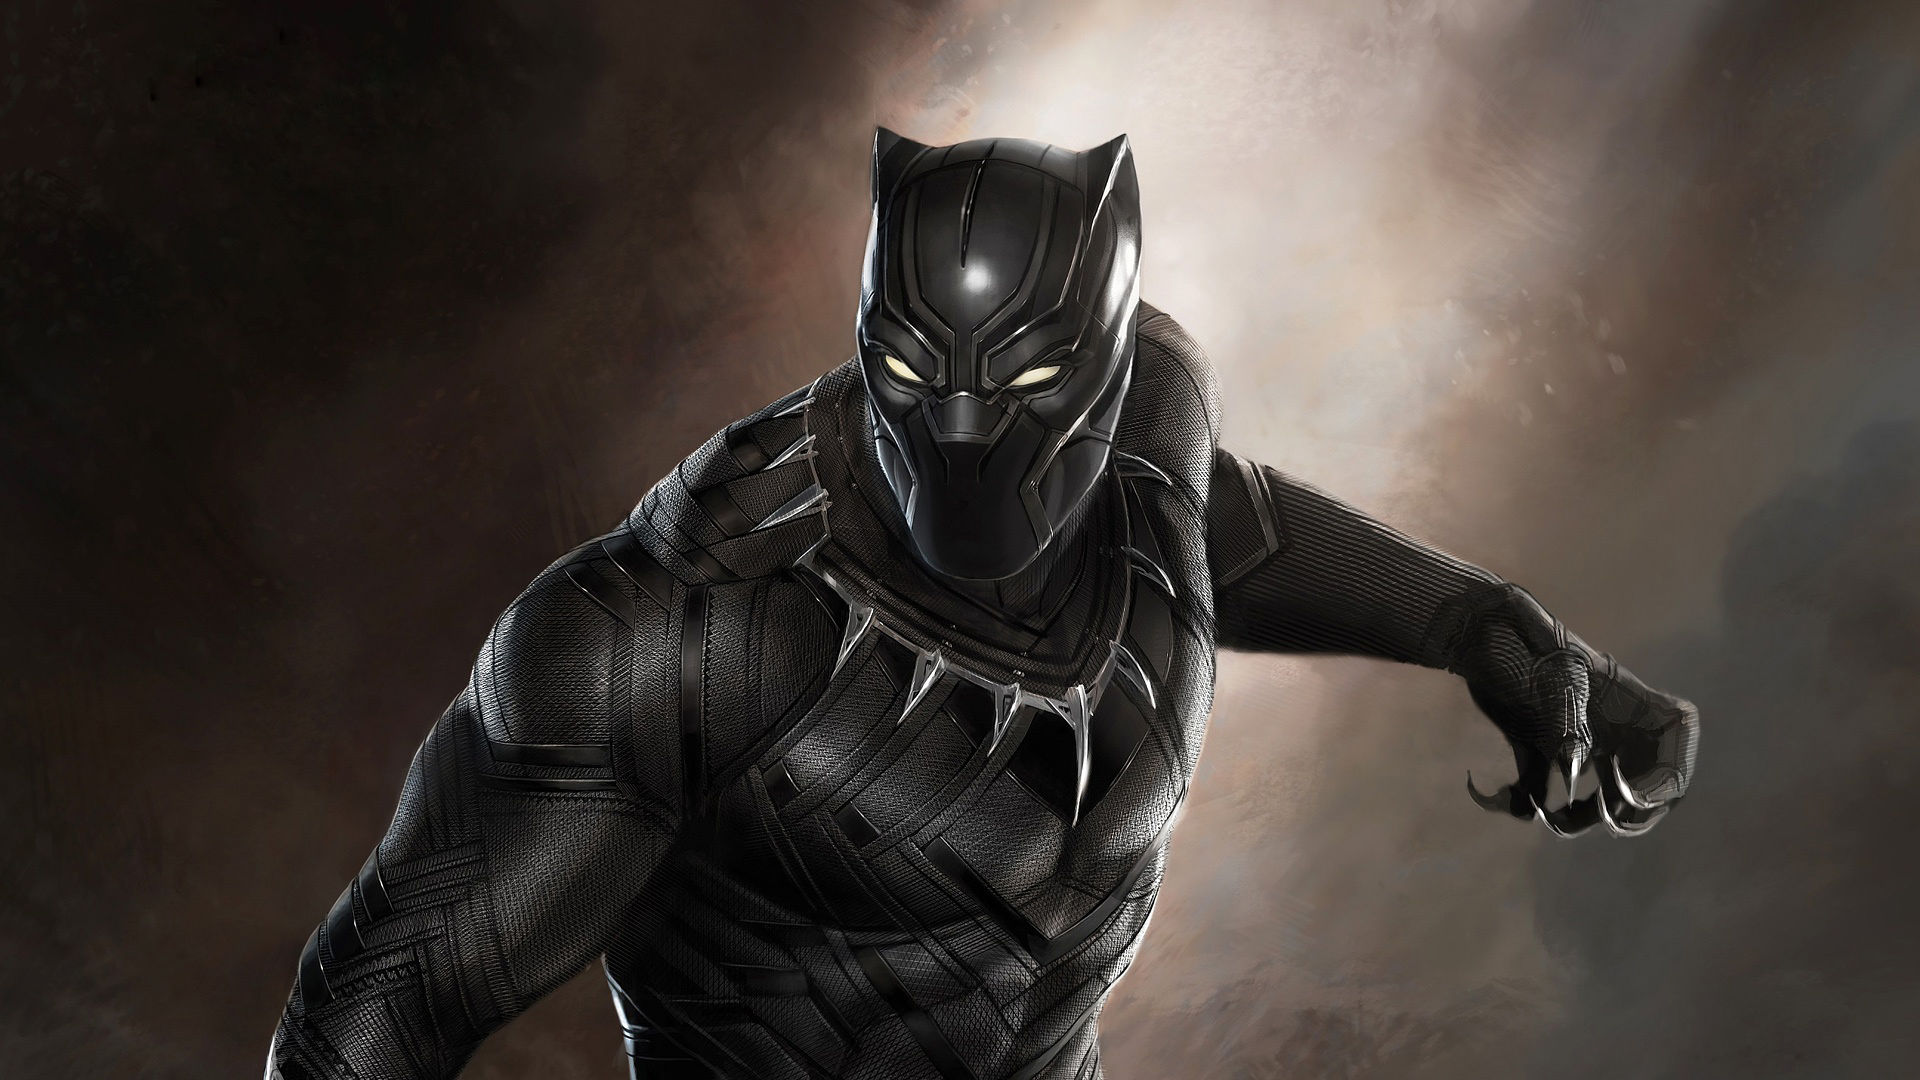 black_panther_2017_movie-1920x1080-black-panther-delivering-marvel-s-most-important-movie-jpeg-305234